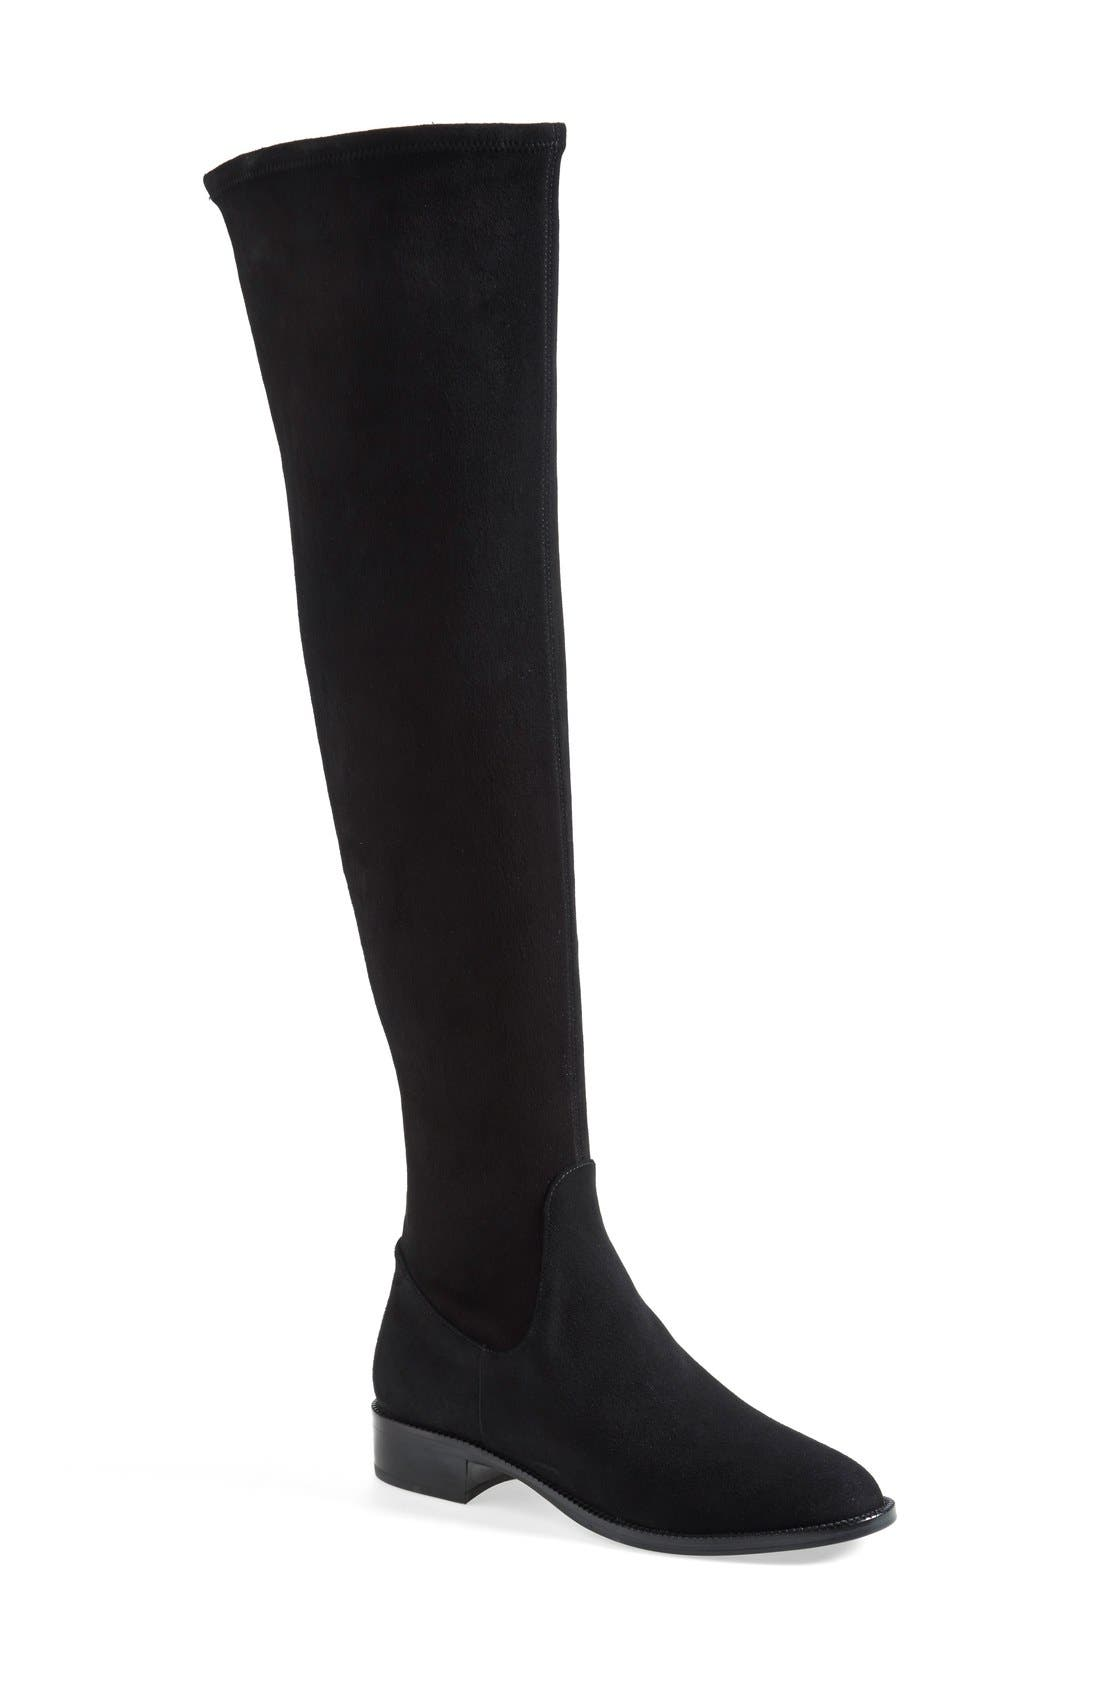 Alternate Image 1 Selected - Via Spiga 'Boni' Over the Knee Boot (Women)